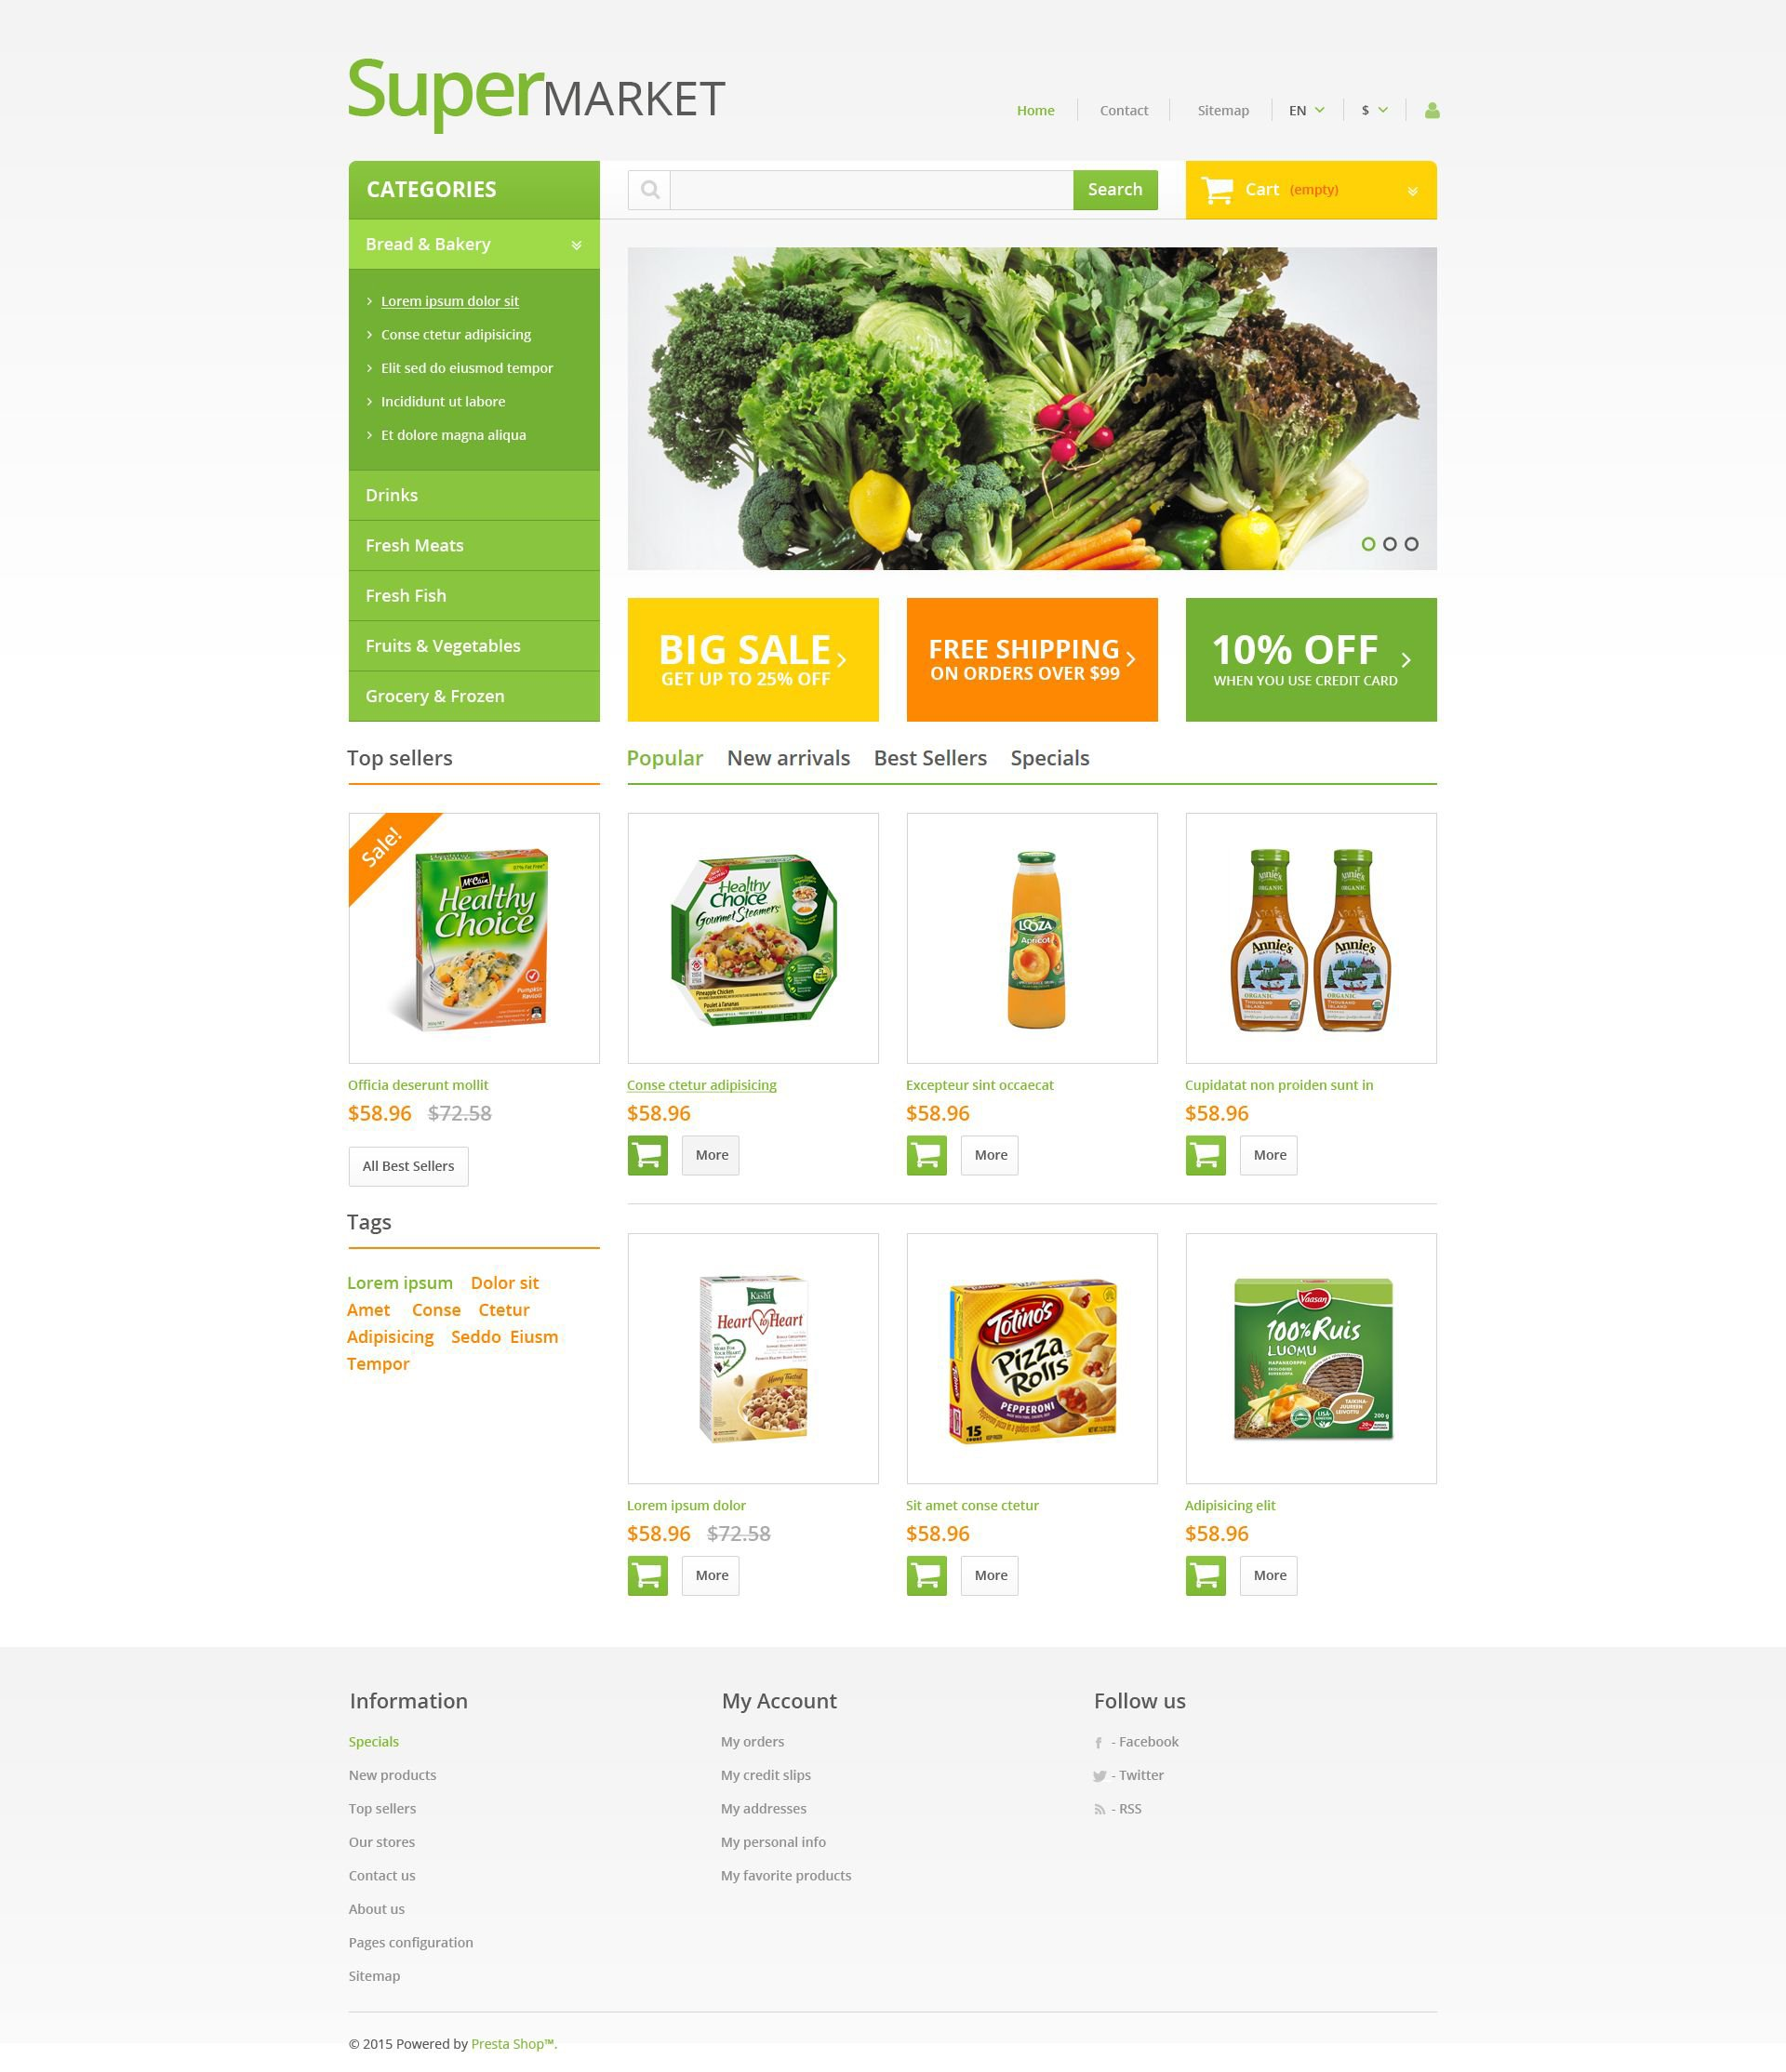 The Supermarket Food Online Store PrestaShop Design 54022, one of the best PrestaShop themes of its kind (food & drink, most popular), also known as supermarket food online store PrestaShop template, fruit PrestaShop template, natural company PrestaShop template, manufacturer PrestaShop template, manufacture PrestaShop template, production PrestaShop template, fresh PrestaShop template, beverage PrestaShop template, PSD template PrestaShop template, wine PrestaShop template, production PrestaShop template, cake PrestaShop template, cakes PrestaShop template, food PrestaShop template, feast PrestaShop template, tasty PrestaShop template, delicious PrestaShop template, gourmet PrestaShop template, vegetables PrestaShop template, fruits and related with supermarket food online store, fruit, natural company, manufacturer, manufacture, production, fresh, beverage, PSD template, wine, production, cake, cakes, food, feast, tasty, delicious, gourmet, vegetables, fruits, etc.